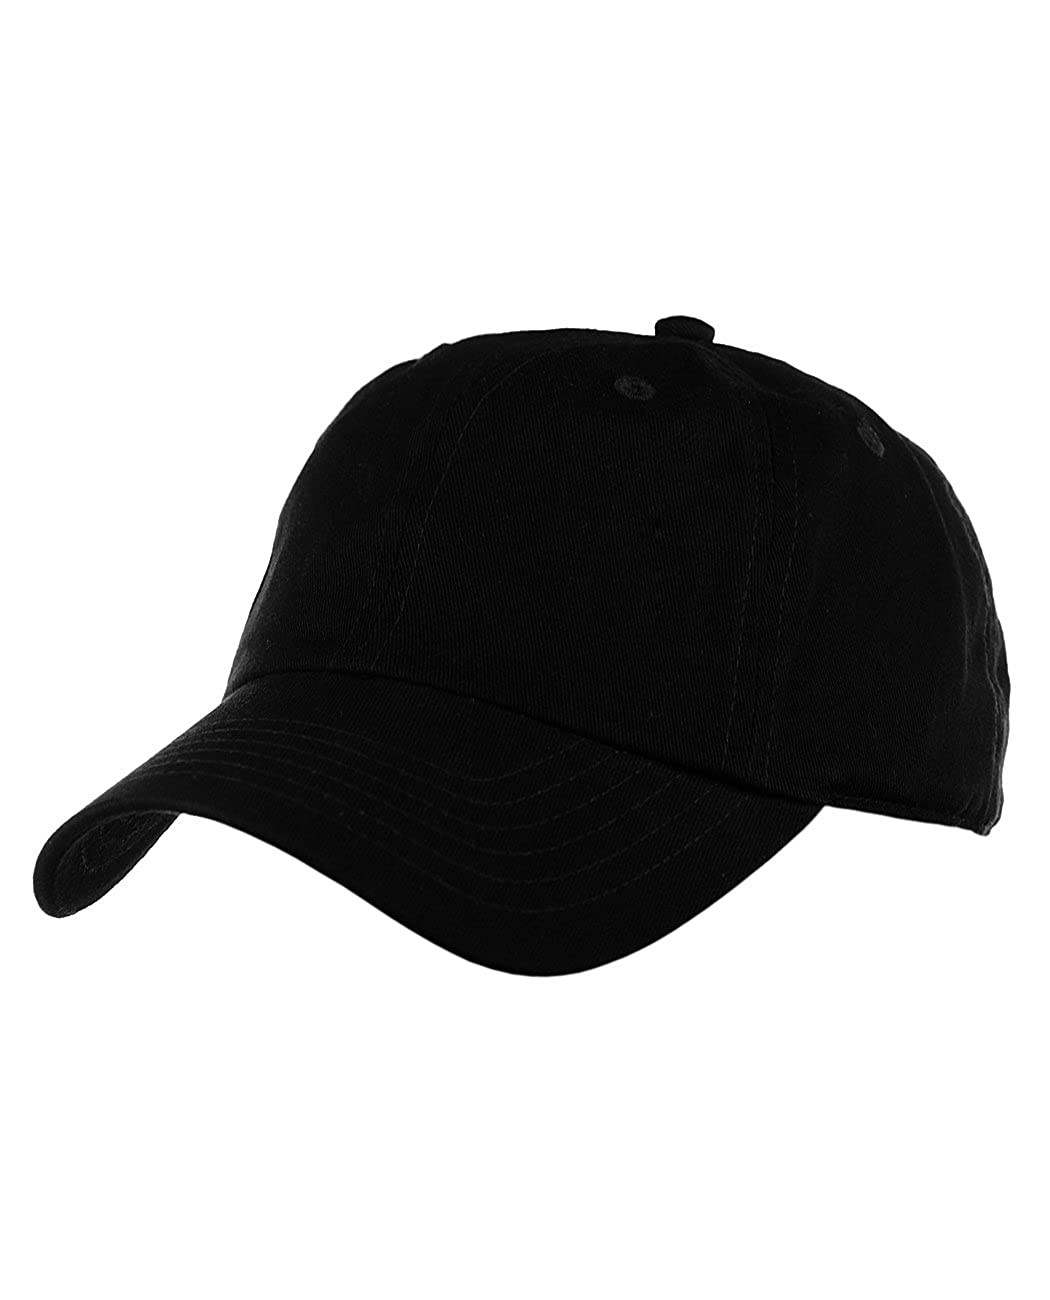 2e1a15bcf45b6f Amazon.com: NYFASHION101 Unisex Adjustable 6-Panel Low-Profile Baseball Cap  LOW100- Black: Clothing